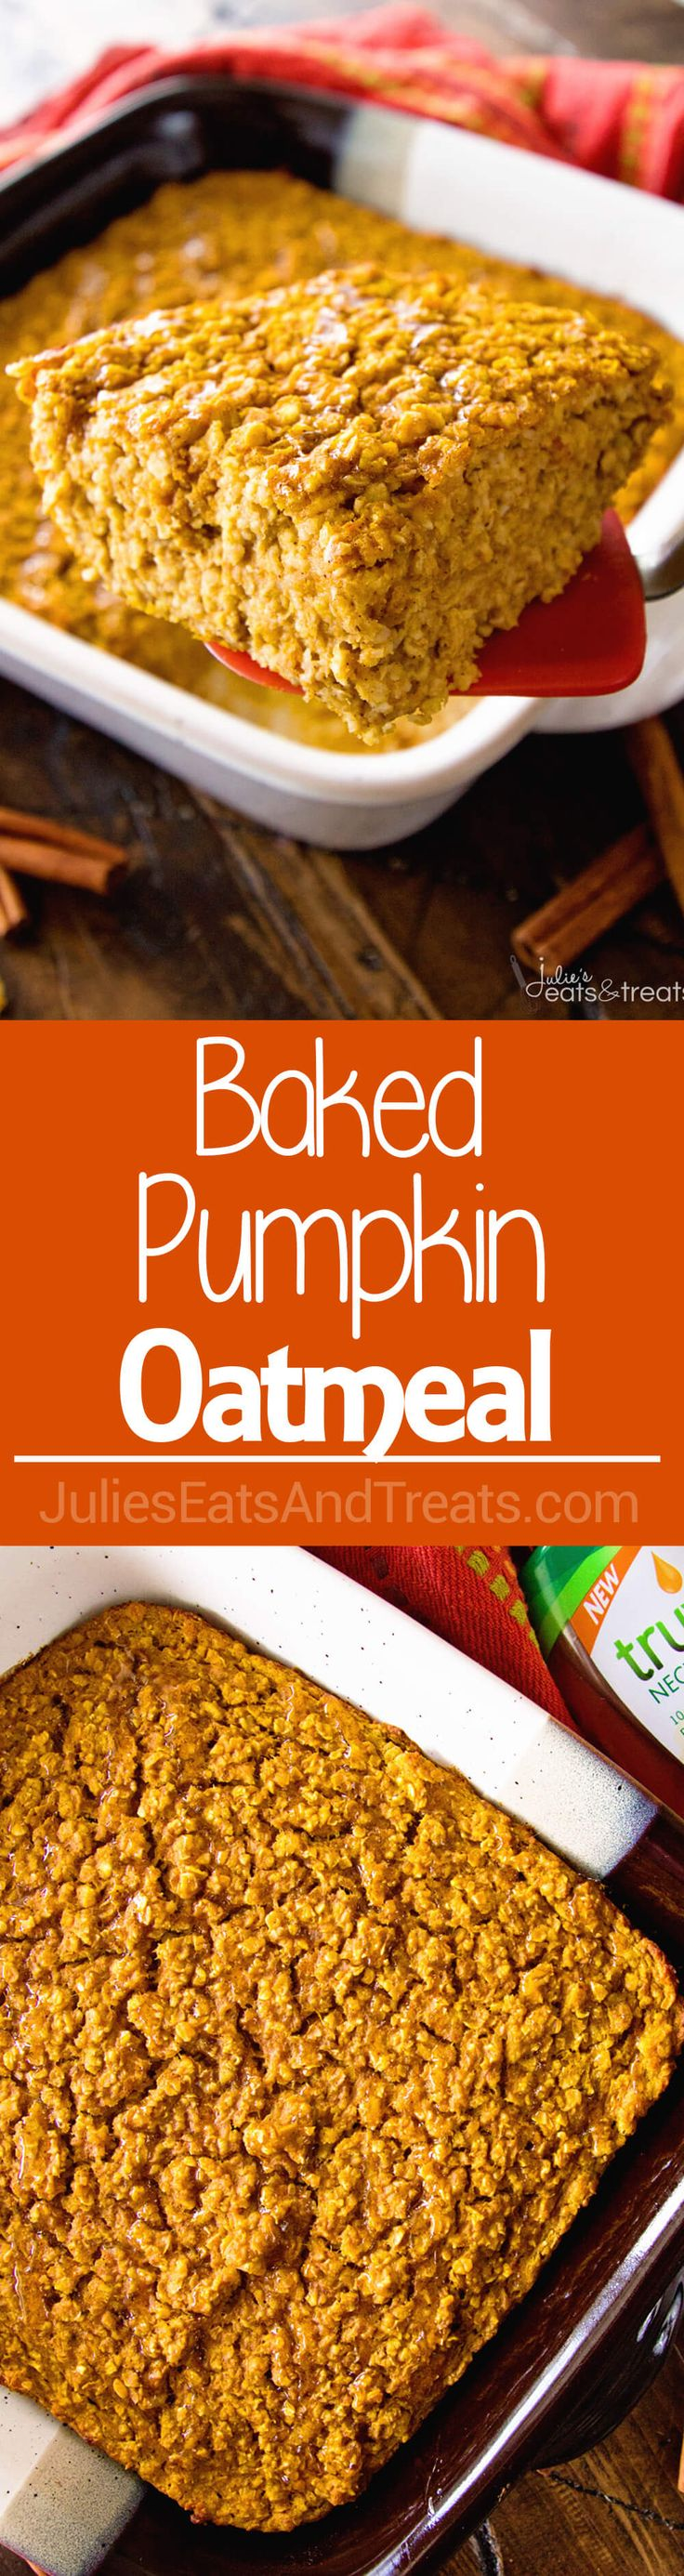 Baked Pumpkin Oatmeal ~ This Easy, Make-Ahead Baked Oatmeal is the Perfect Breakfast for Busy Mornings! Filled with Pumpkin, Oats and Spices to Fill You Up! @TruviaBrand via @julieseats